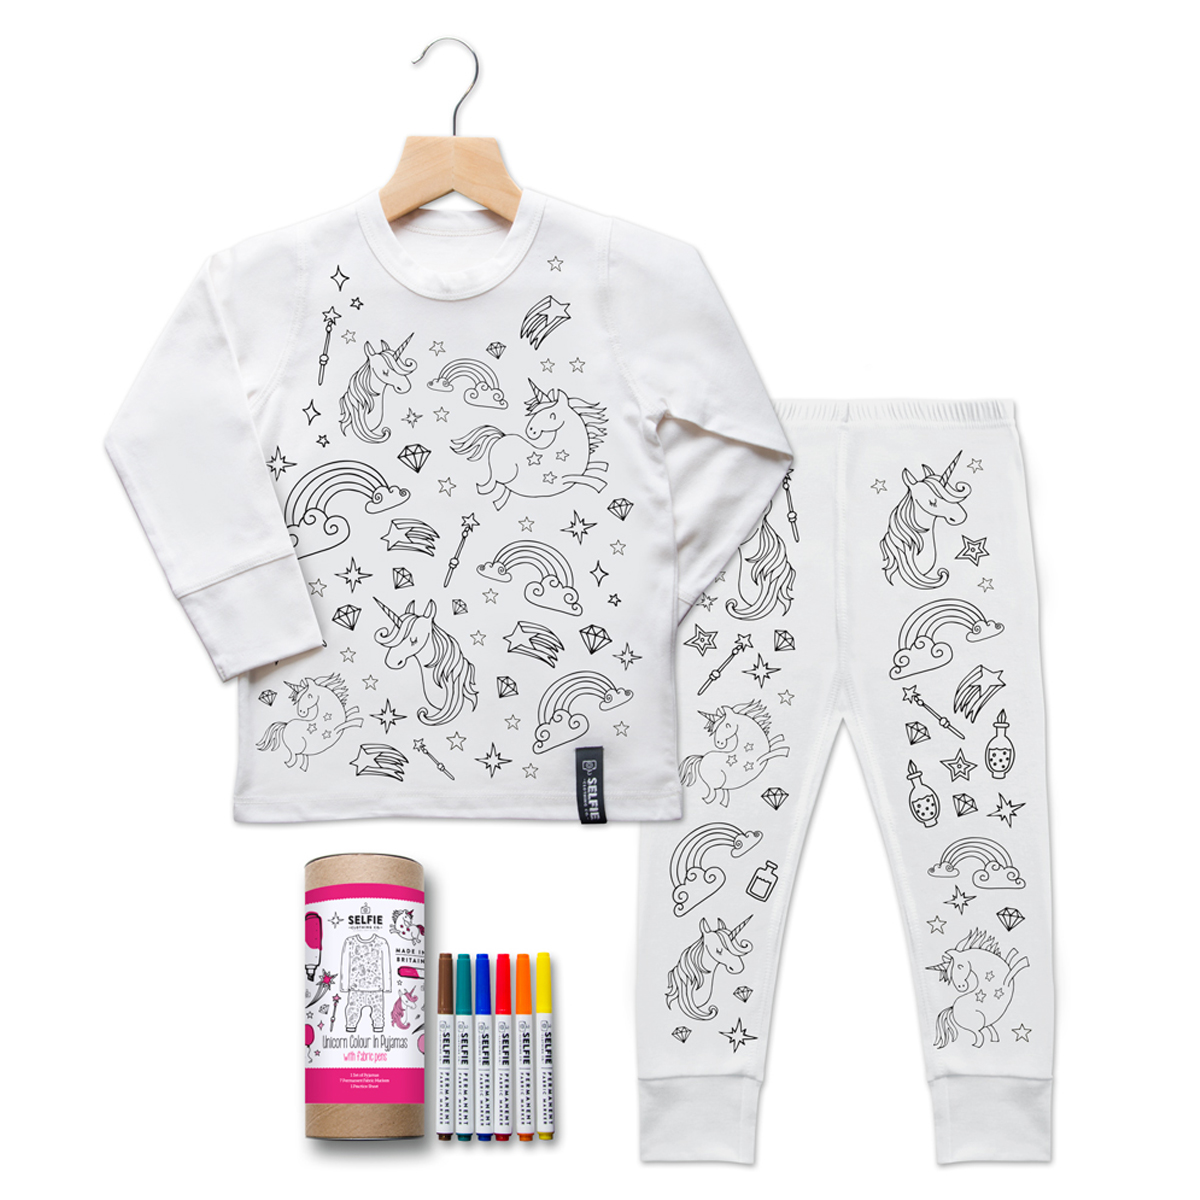 Selfie Clothing Co. Color-In PJs in Unicorn